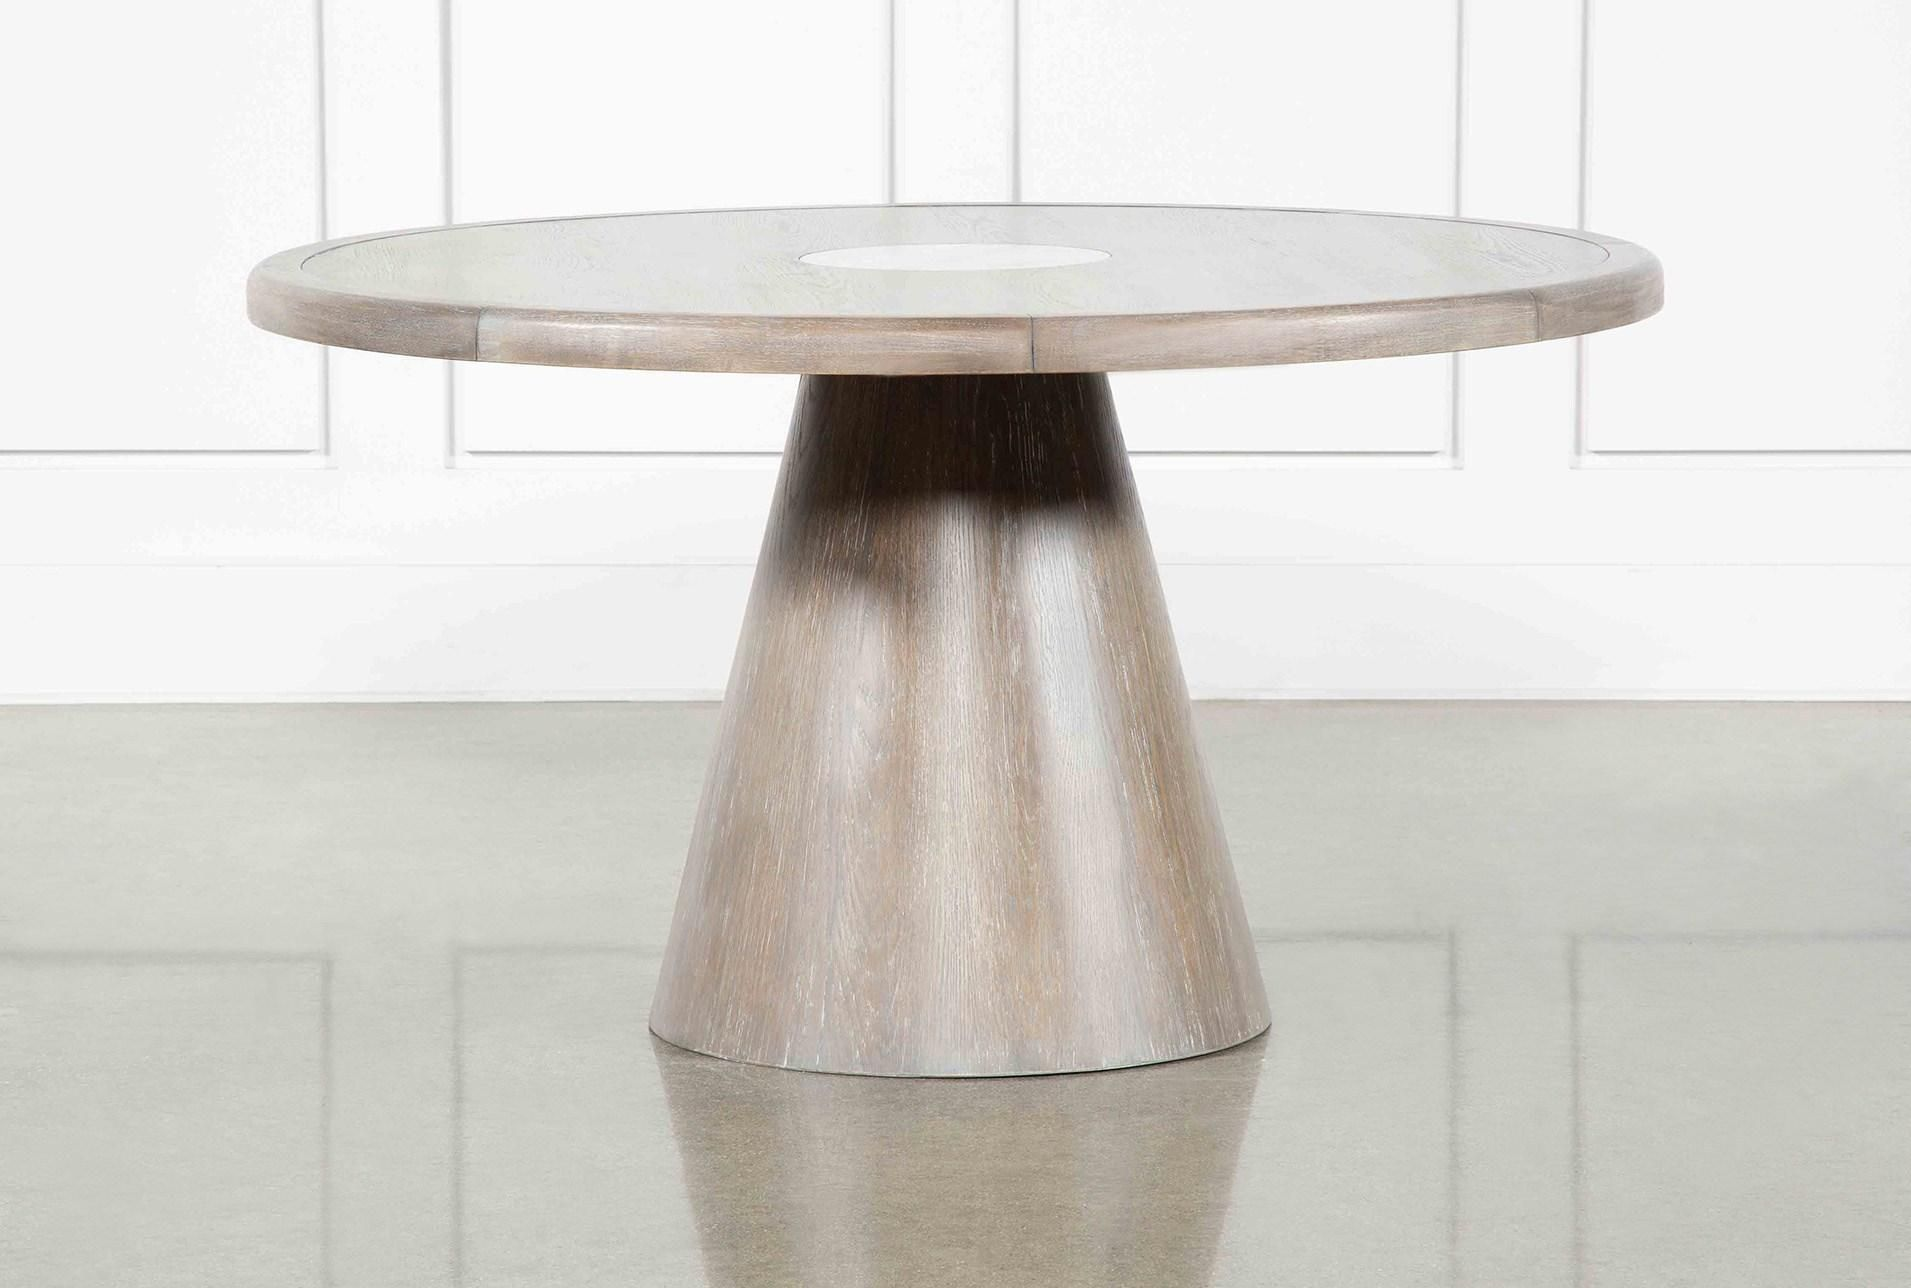 Pavilion Round Dining Table By Nate Berkus And Jeremiah Brent Round Dining Table Round Dining Round Dining Set [ 1288 x 1911 Pixel ]